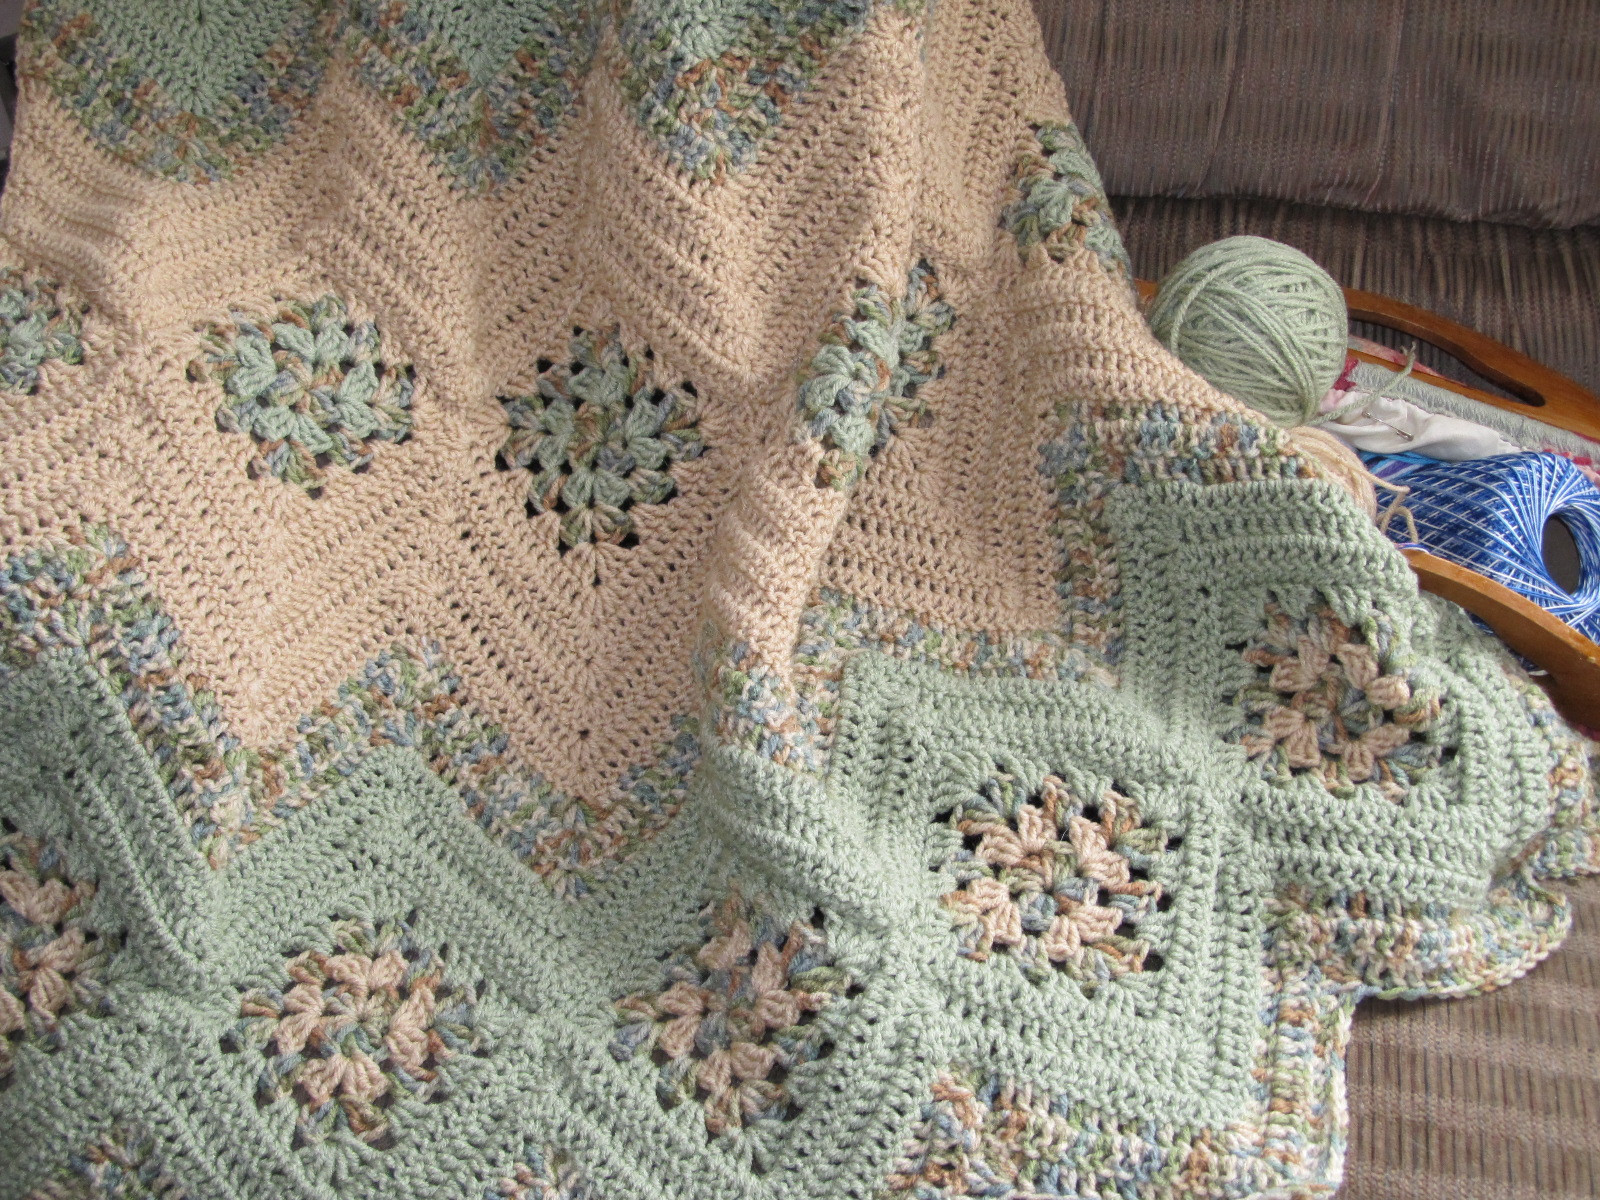 Afghan Square Crochet Patterns Unique Grannies & Ripples Crochet Afghan [free Pattern] Of Amazing 50 Pics Afghan Square Crochet Patterns